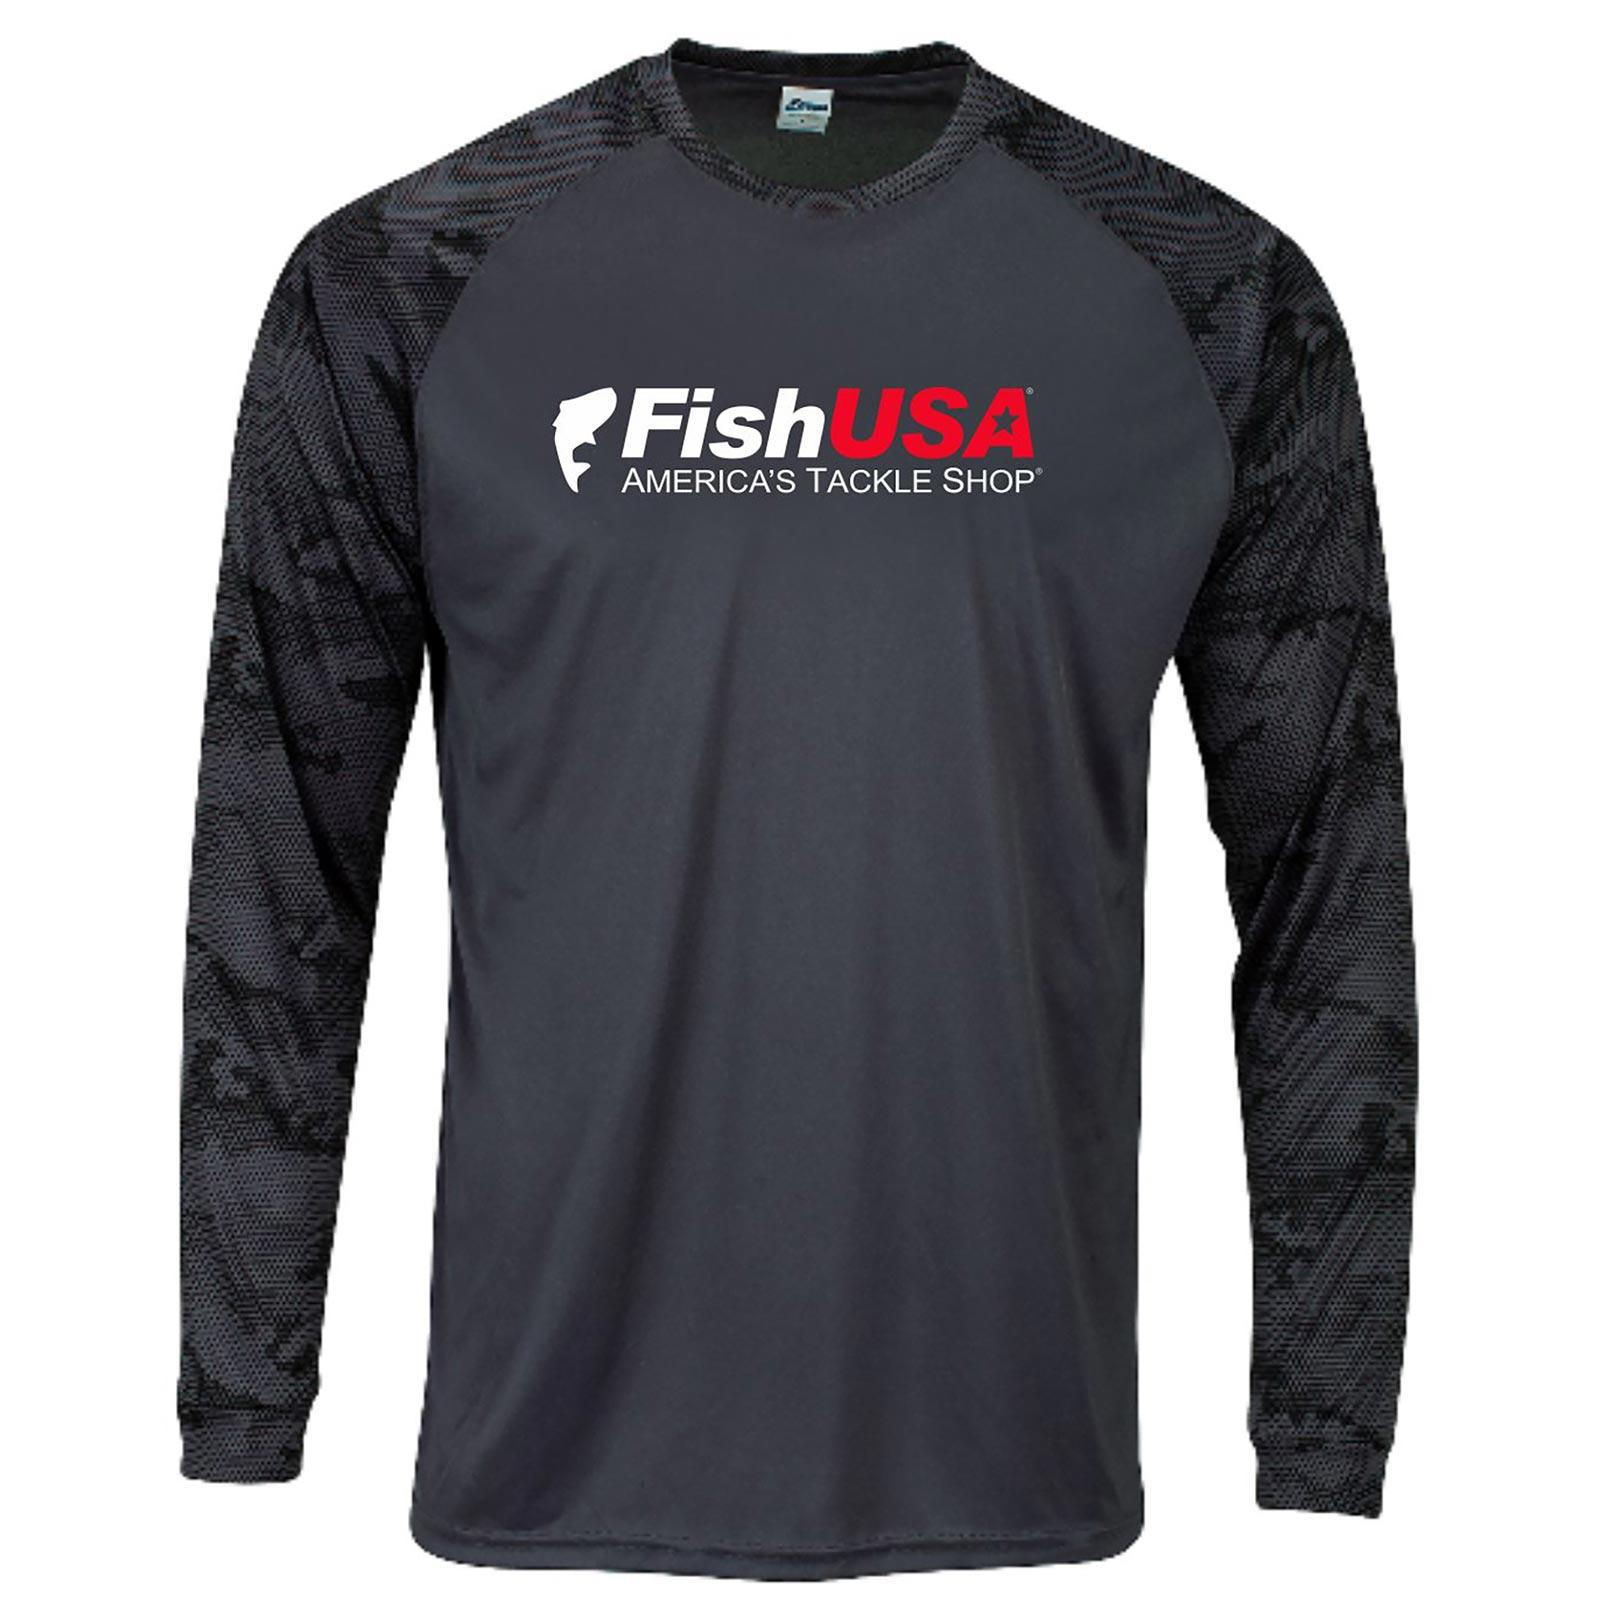 FishUSA Men's Limited Edition Long Sleeve Performance Shirt